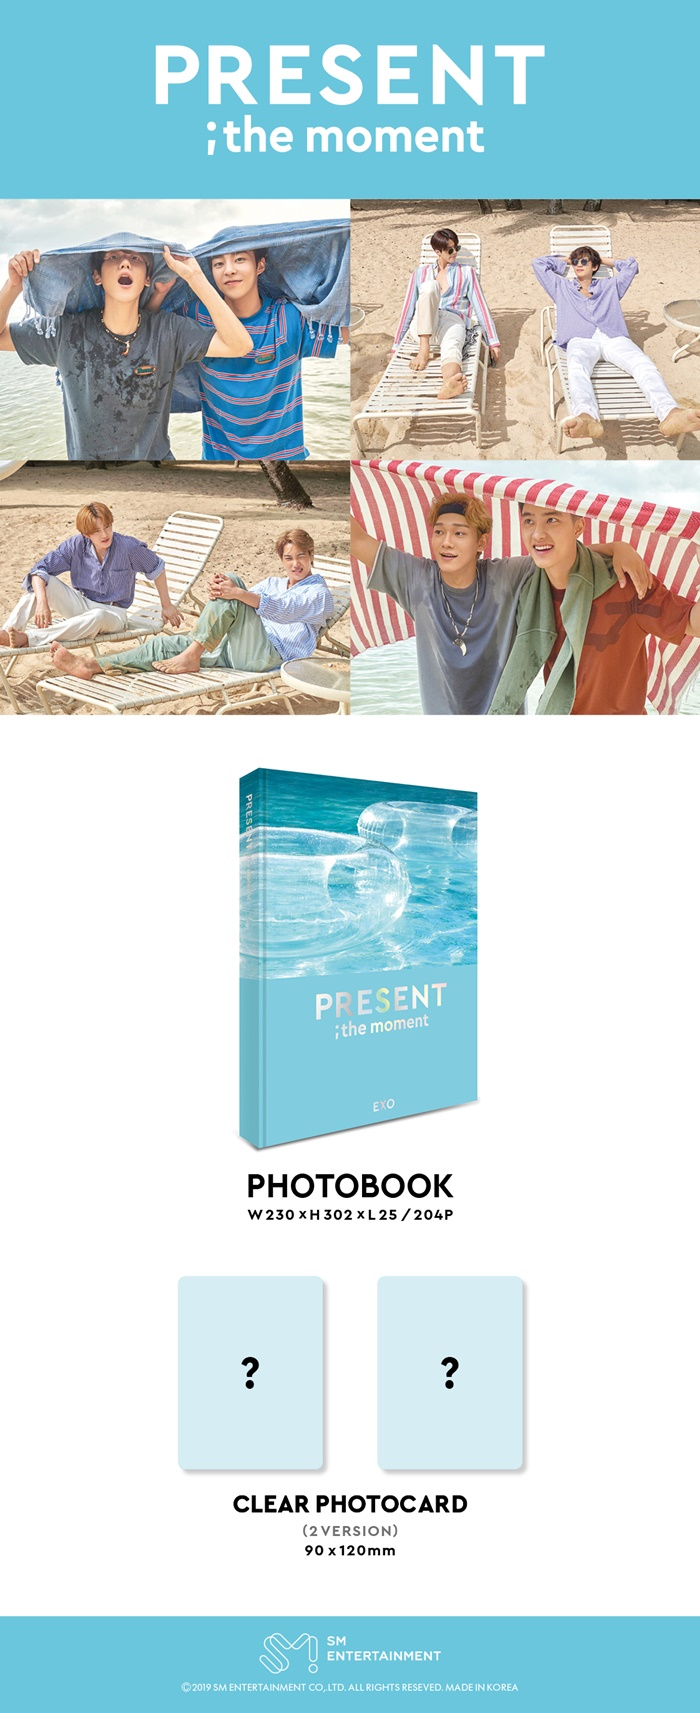 Photobook EXO - Present:The moment